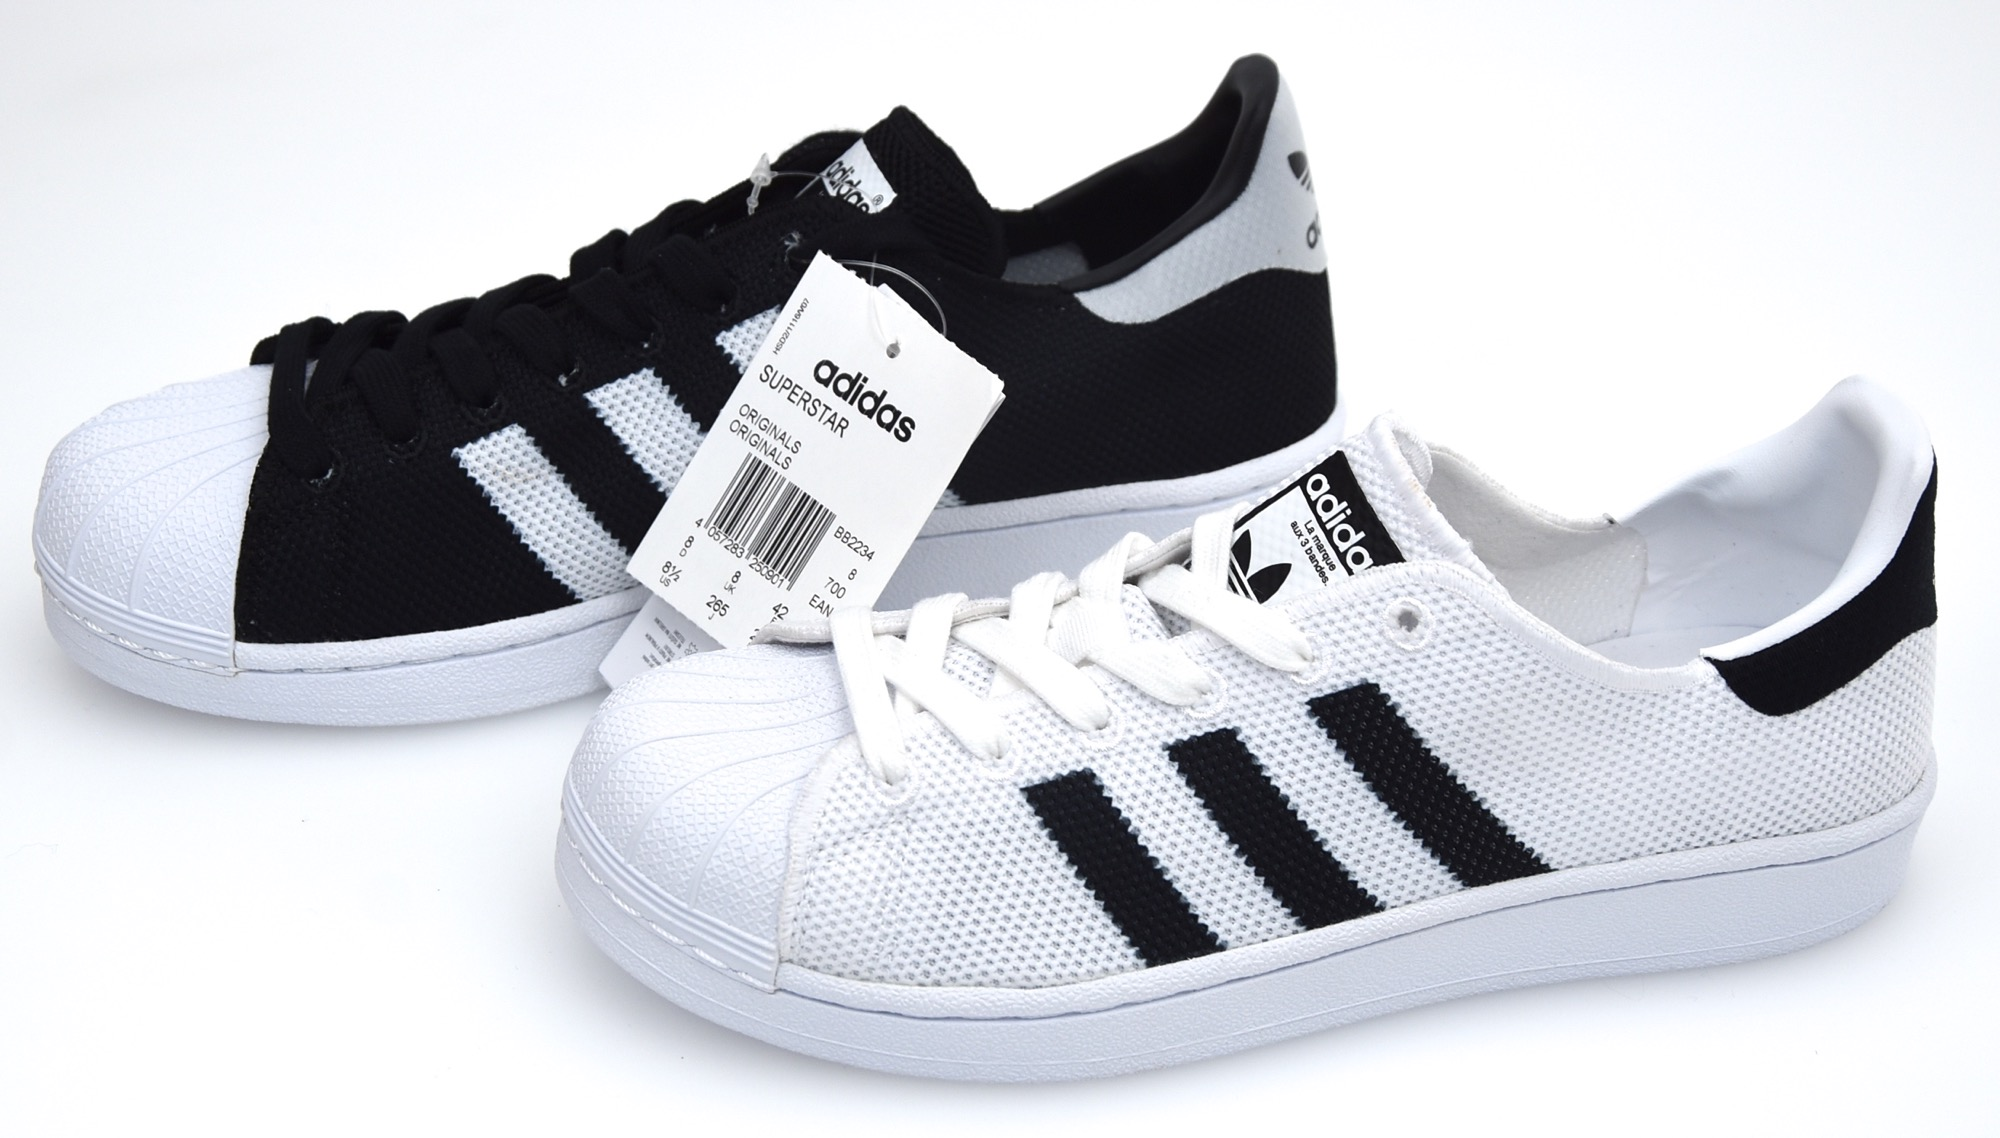 75f3b5046ad576 Details about ADIDAS MAN WOMAN UNISEX SPORTS SNEAKER SHOES CODE BB2234 -  BB2236 SUPERS